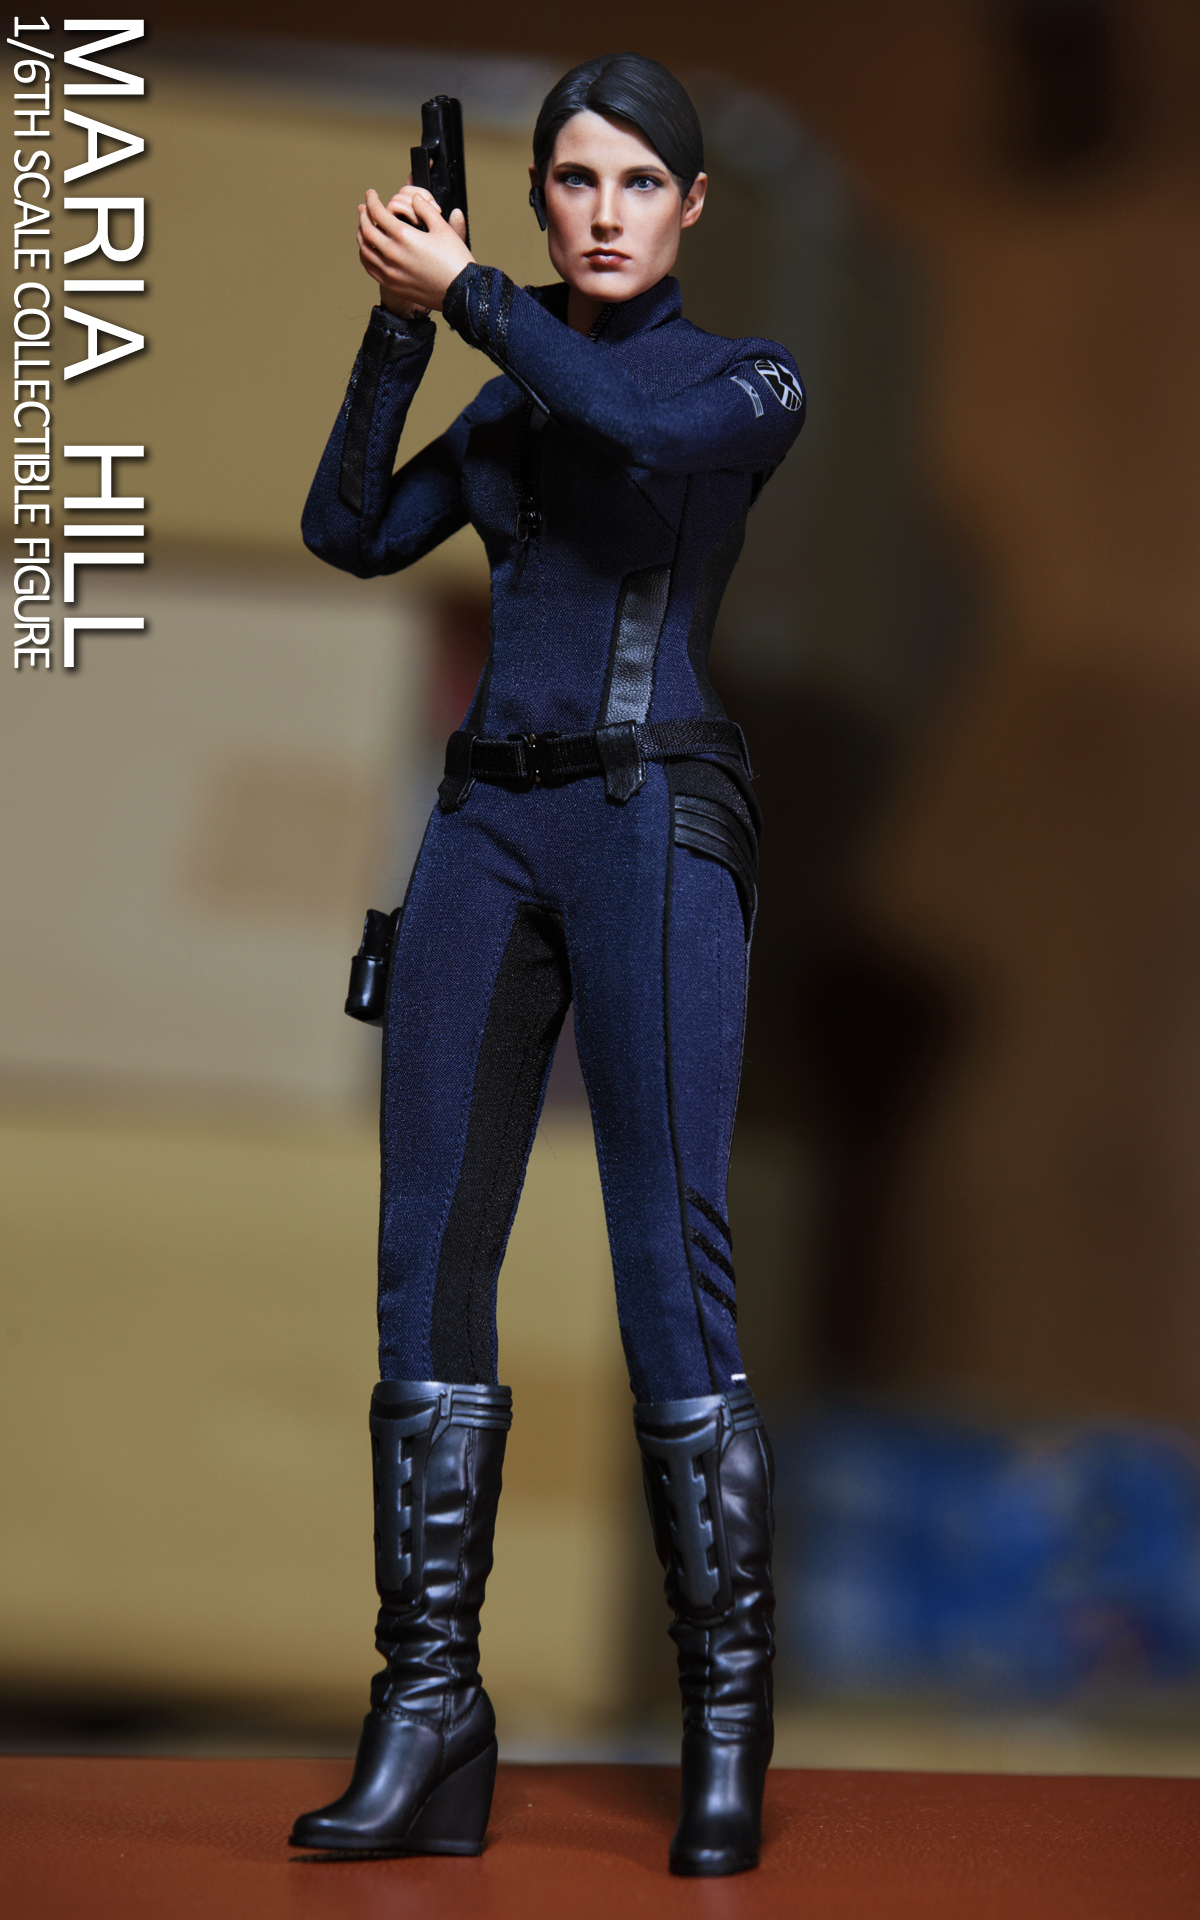 hottoys-avengers-age-of-ultron-maria-hill-picture03